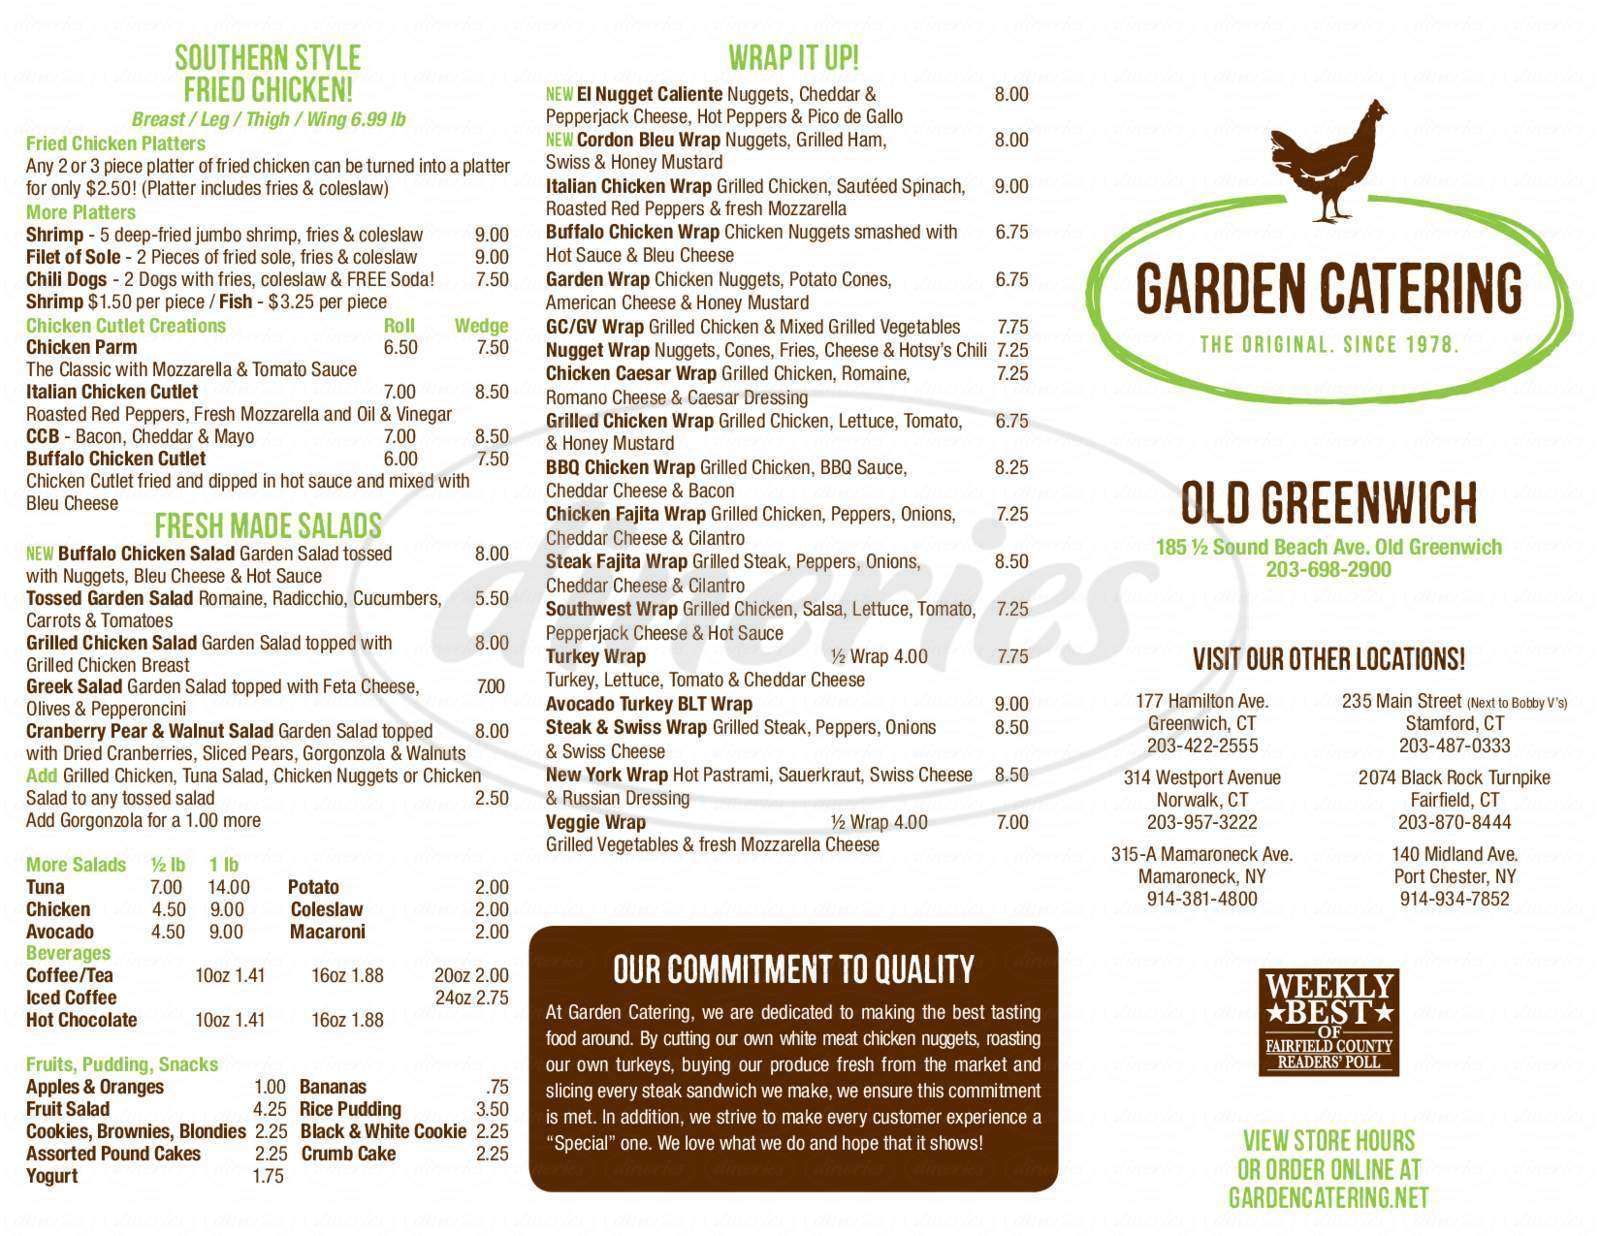 menu for garden catering - Garden Catering